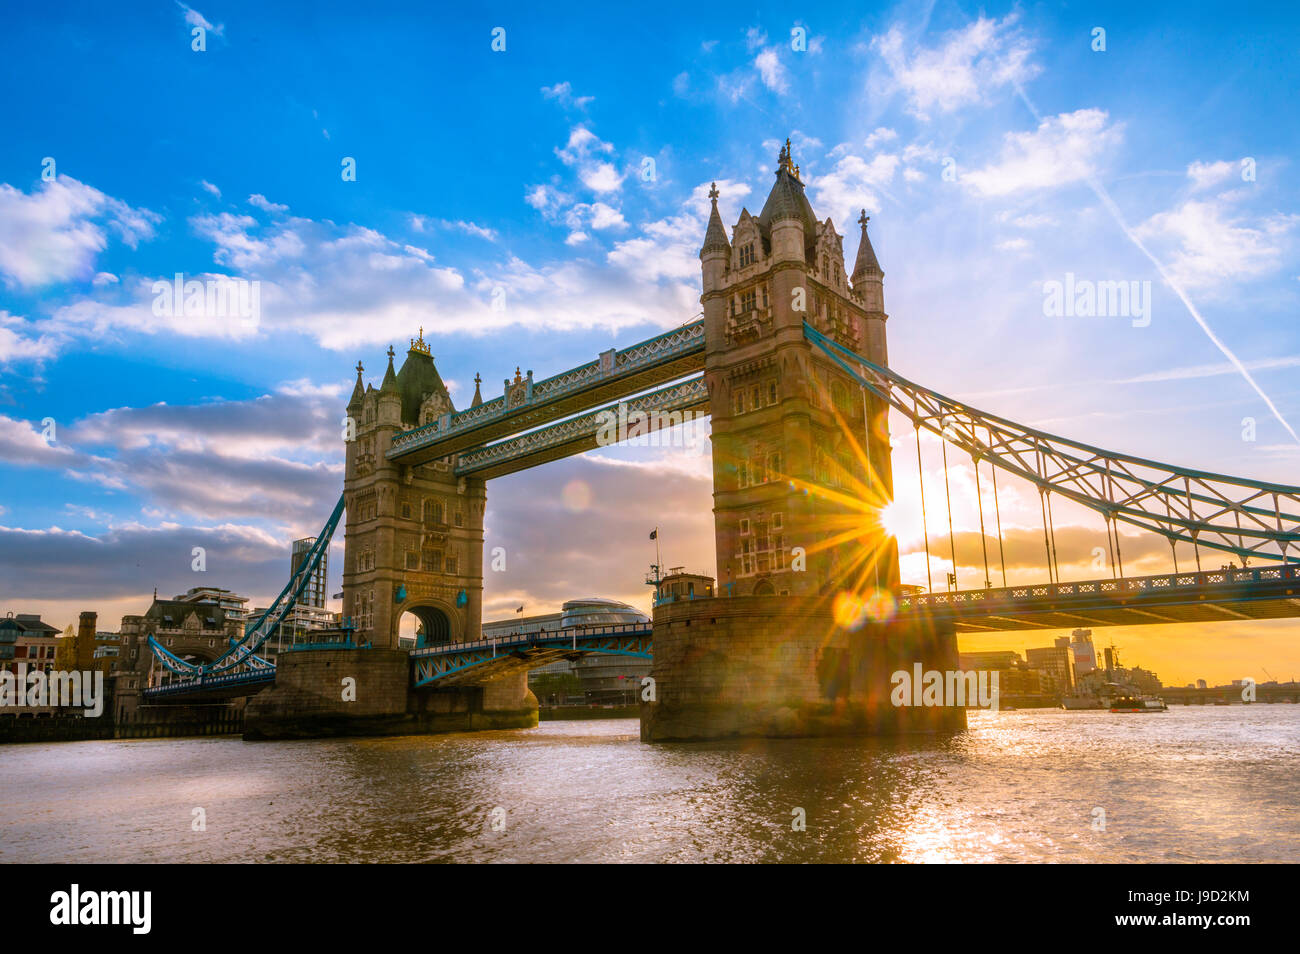 Tower Bridge over the Thames at sunset, London, England, United Kingdom - Stock Image